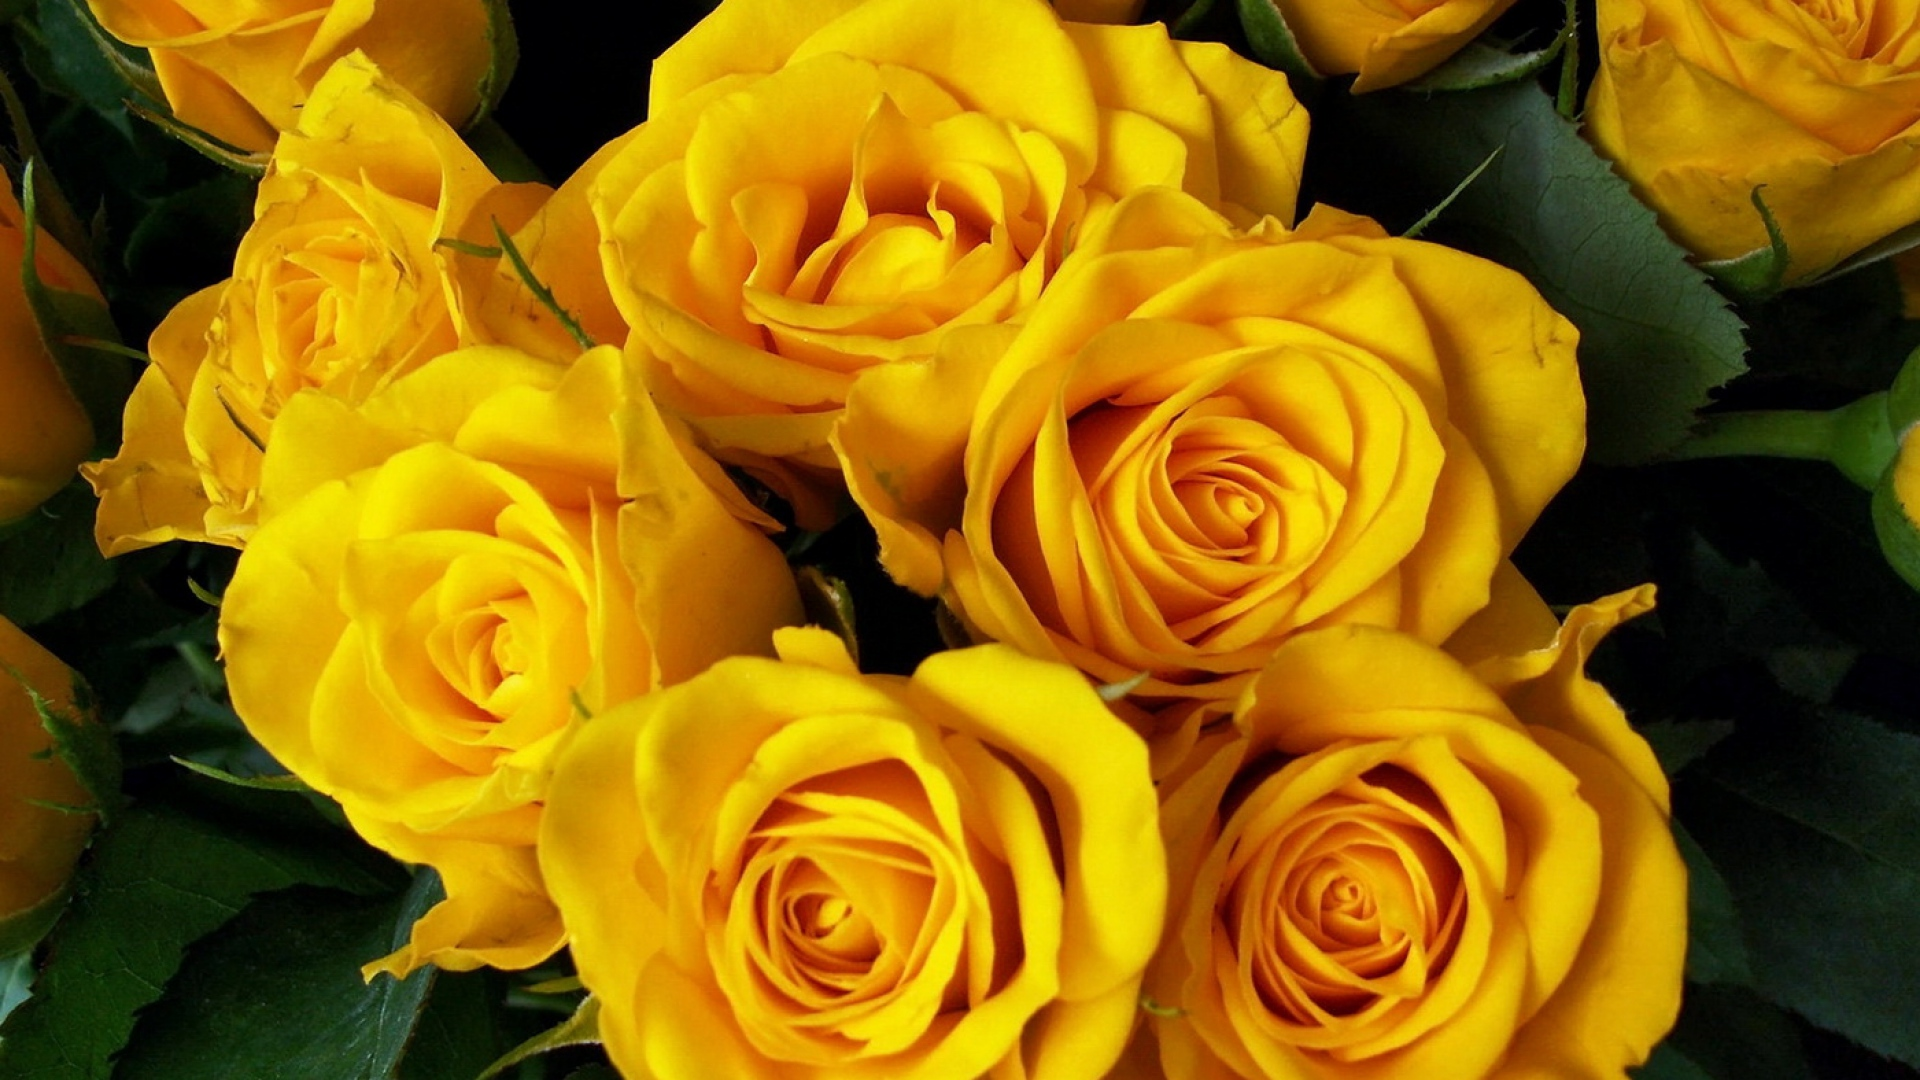 download wallpaper 1920x1080 roses, flower, yellow, bright